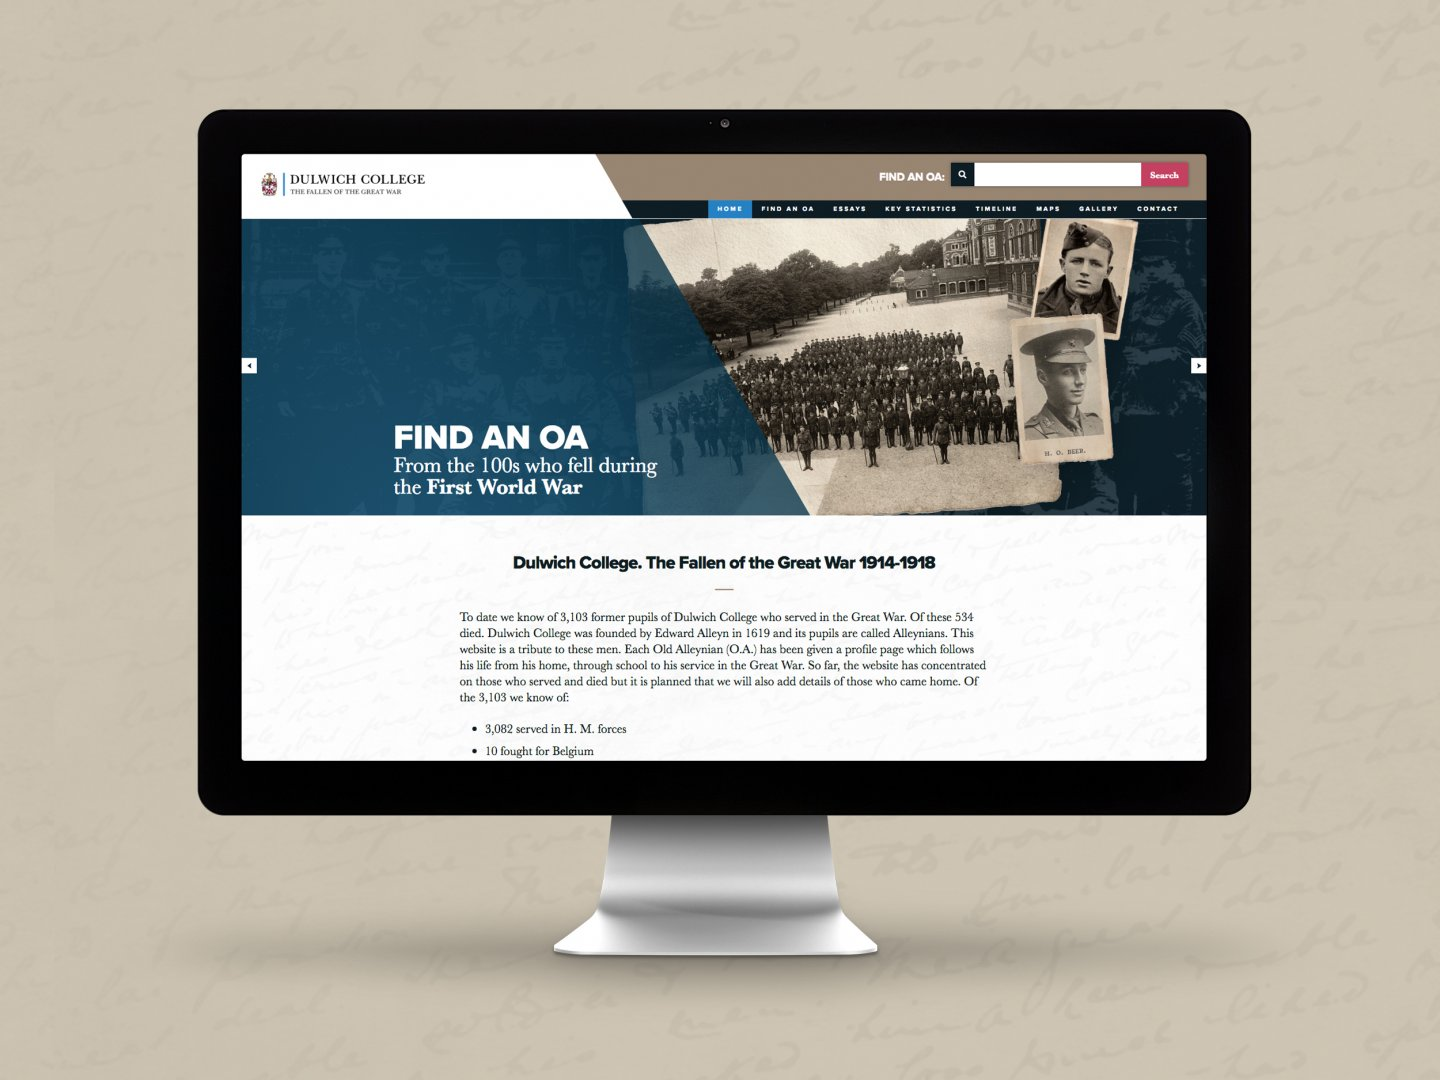 Dulwich College Fallen of the Great War Website - Home